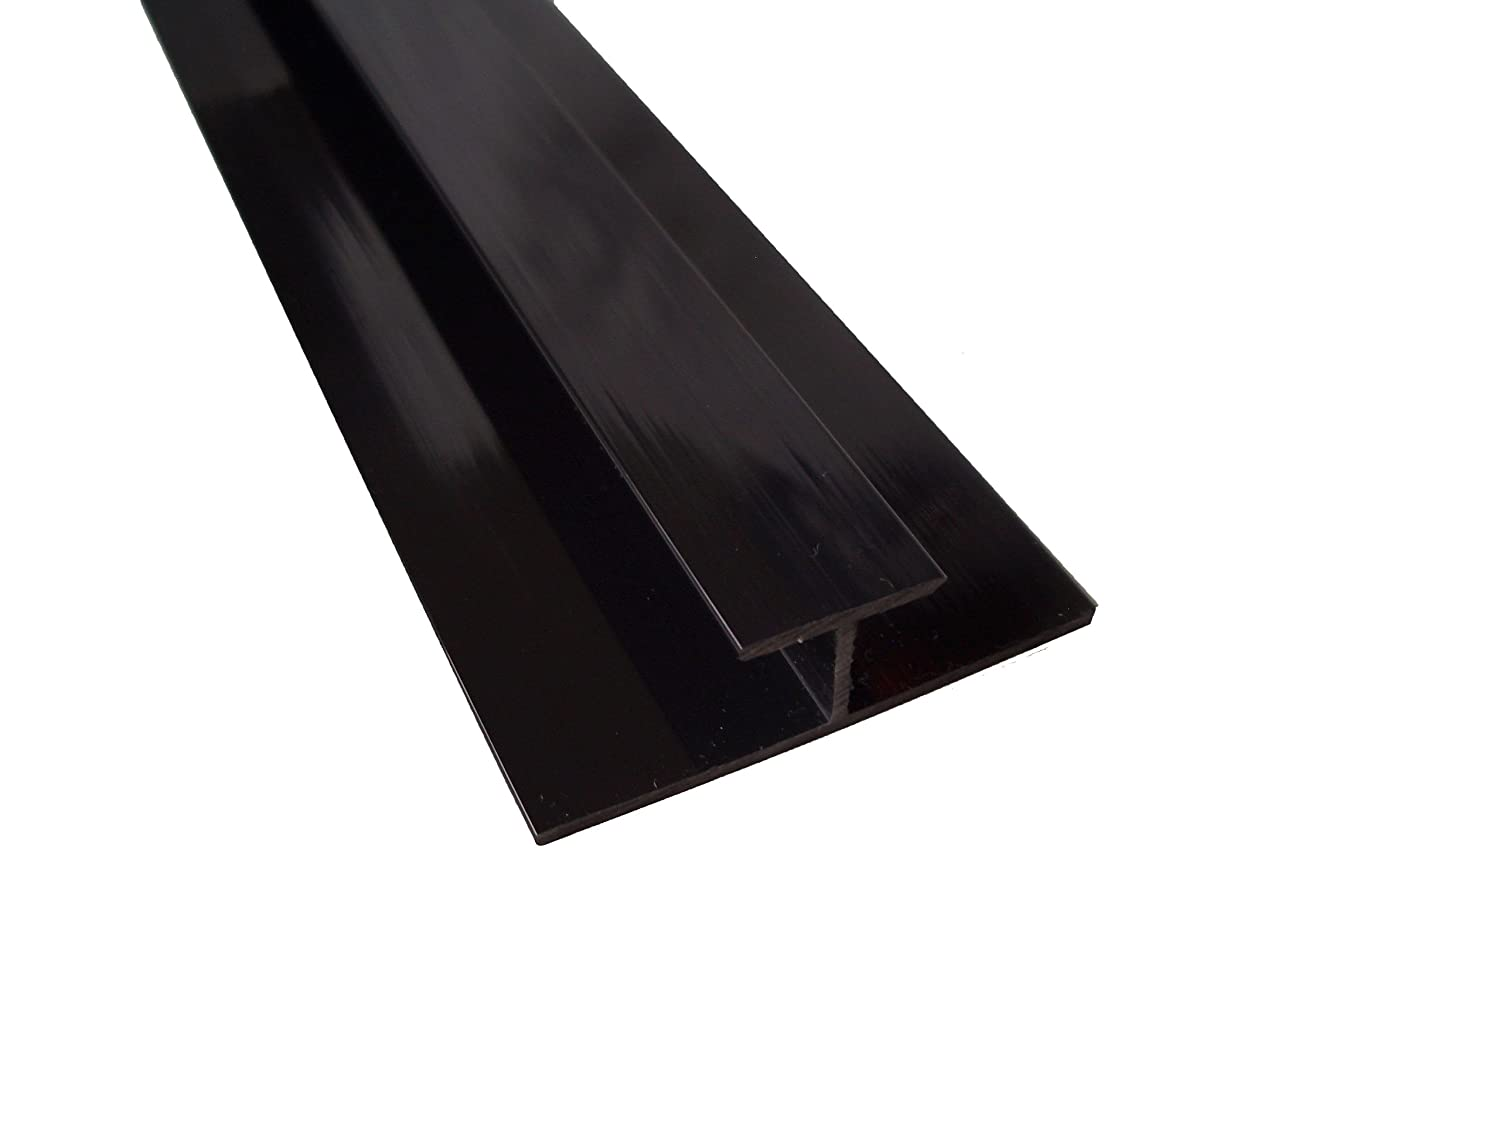 Black Panel Trim Perfect For Bathroom Kitchen Shower Wall PVC Cladding Panels-10mm H Extender Black Edging Trim-100/% Waterproof-Use with Claddtech Adhesive